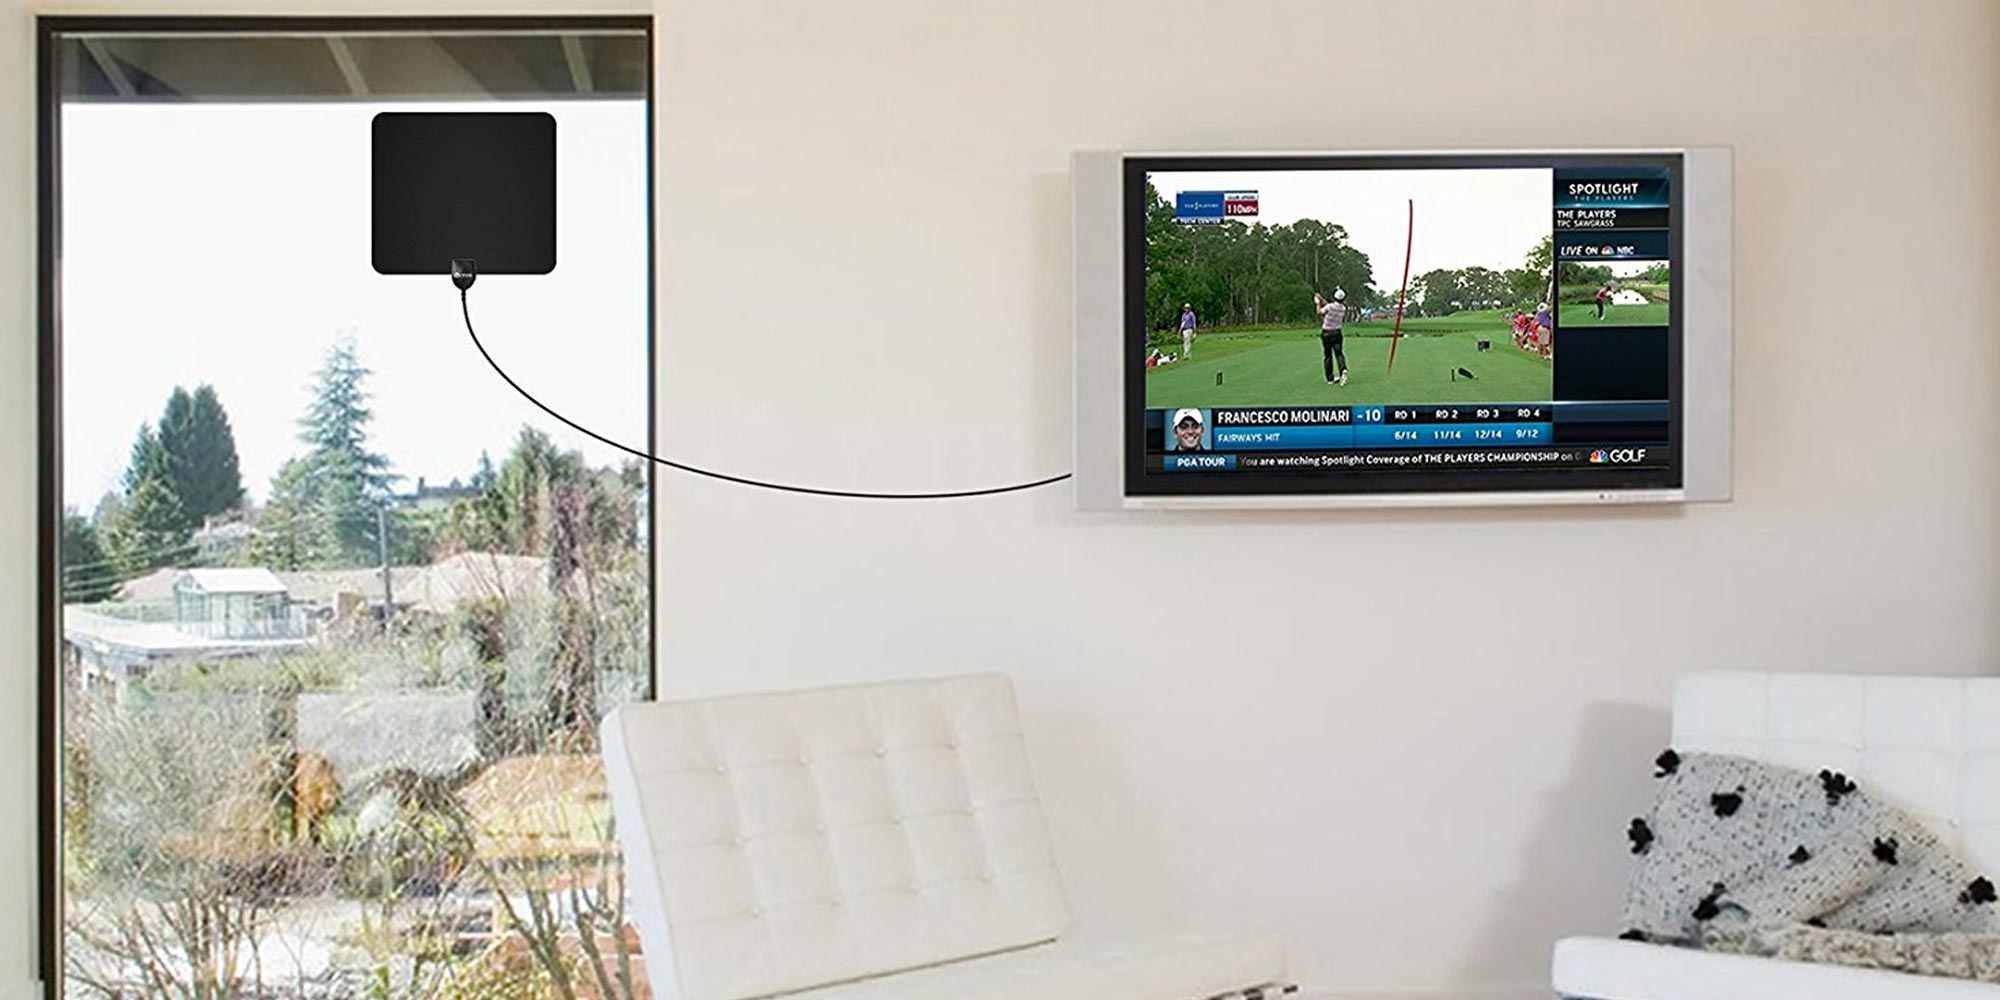 Avoid cable fees w/ Skyfind's 50-mile over the air HDTV antenna for just $10 Prime shipped